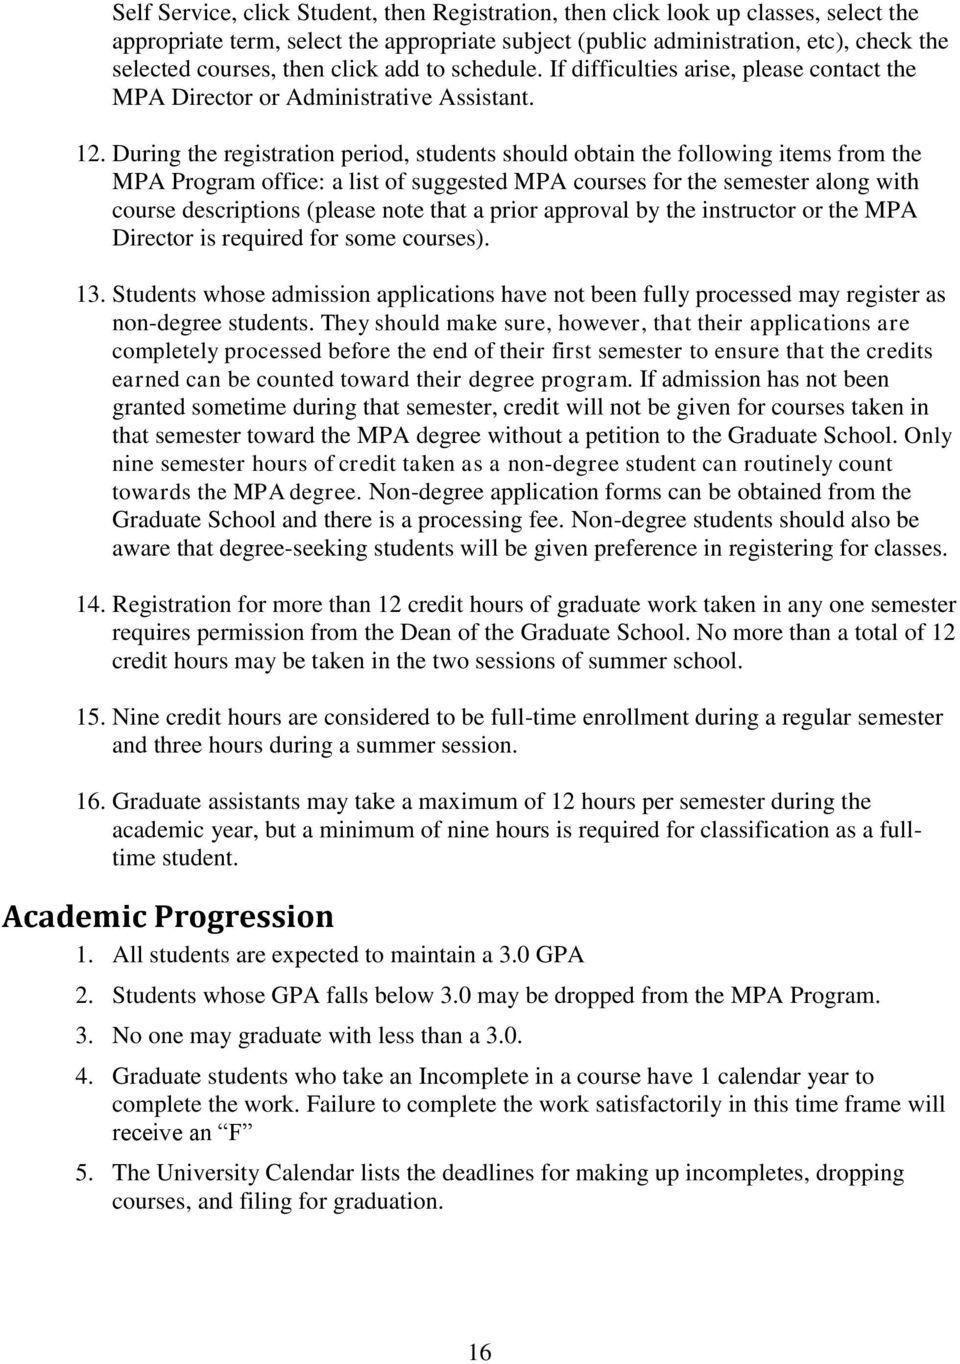 During the registration period, students should obtain the following items from the MPA Program office: a list of suggested MPA courses for the semester along with course descriptions (please note